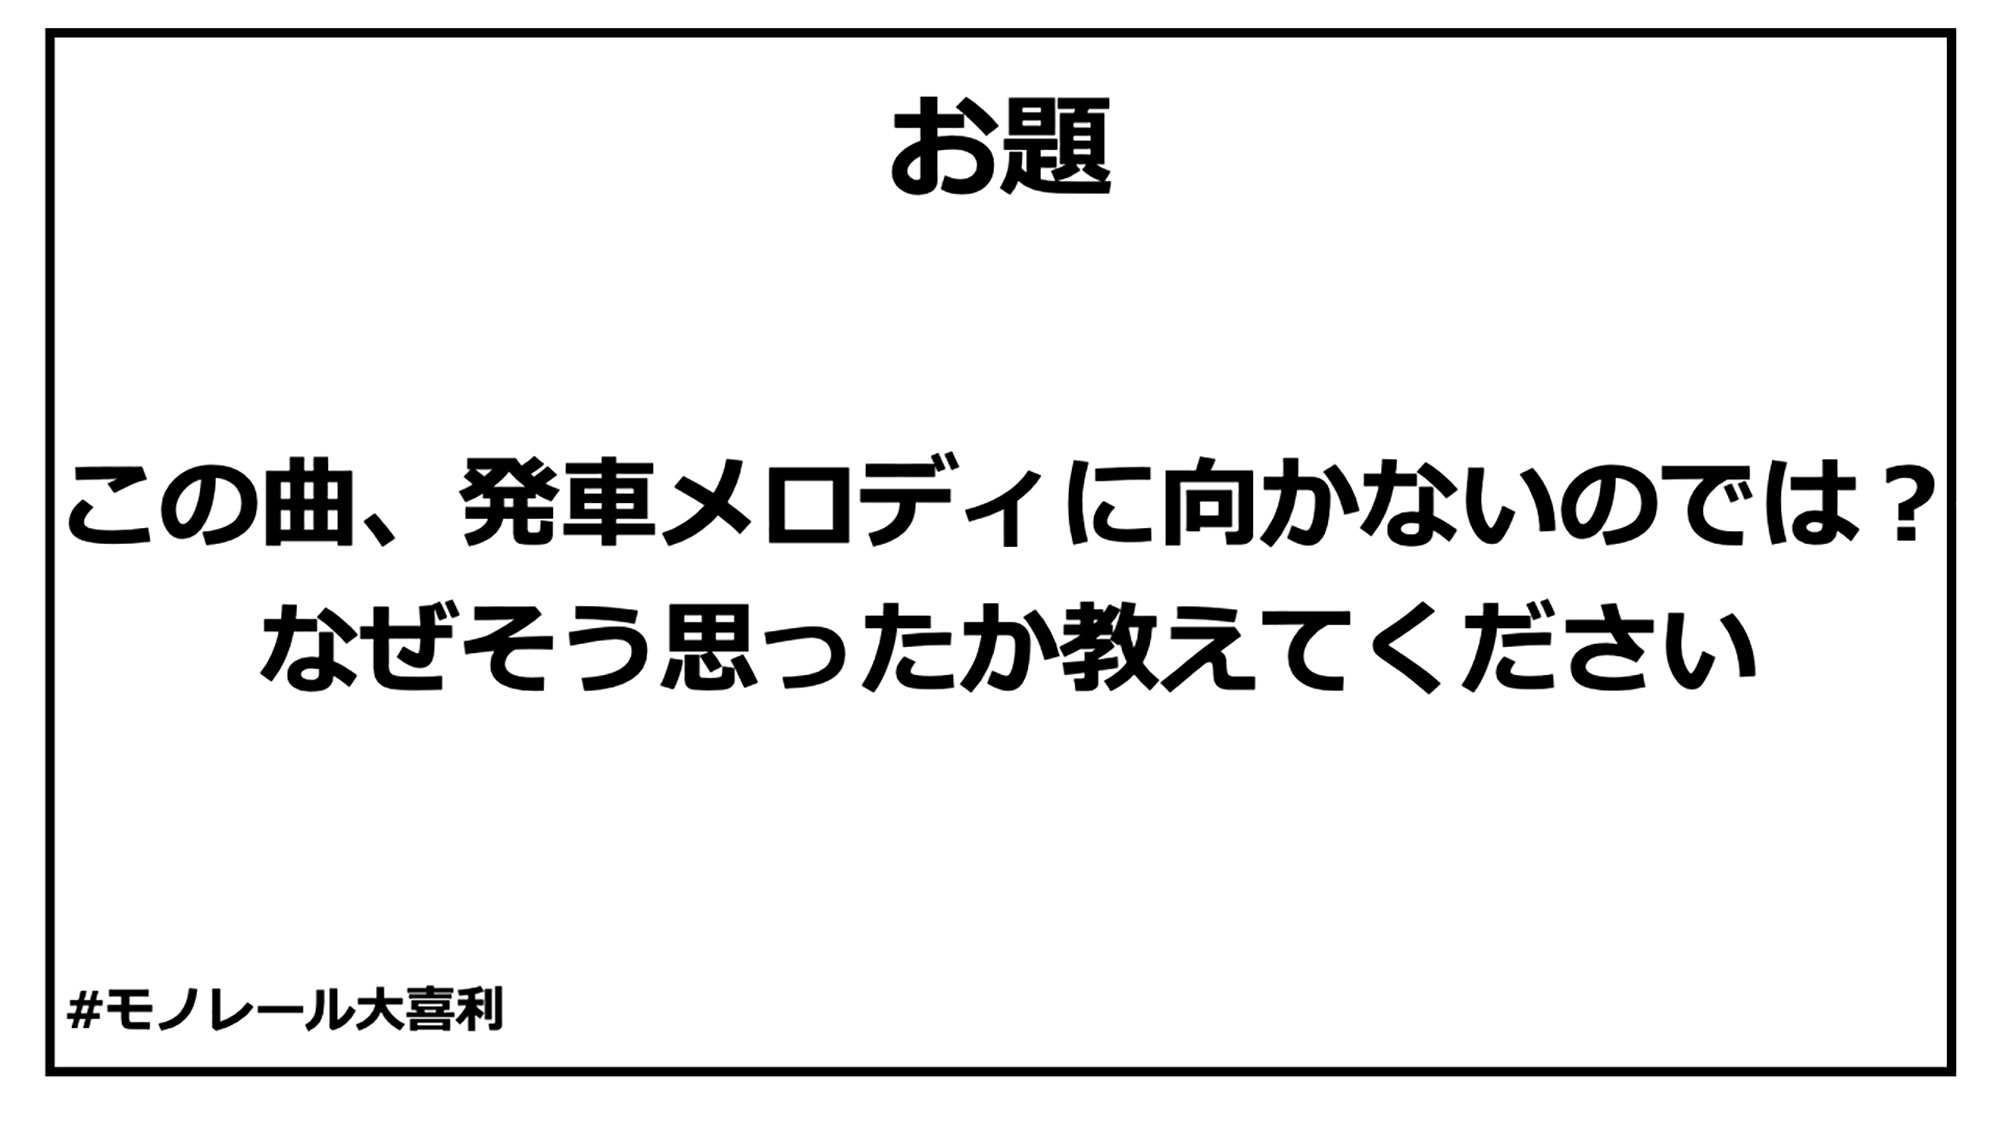 ogiri_answer_30_12.jpg